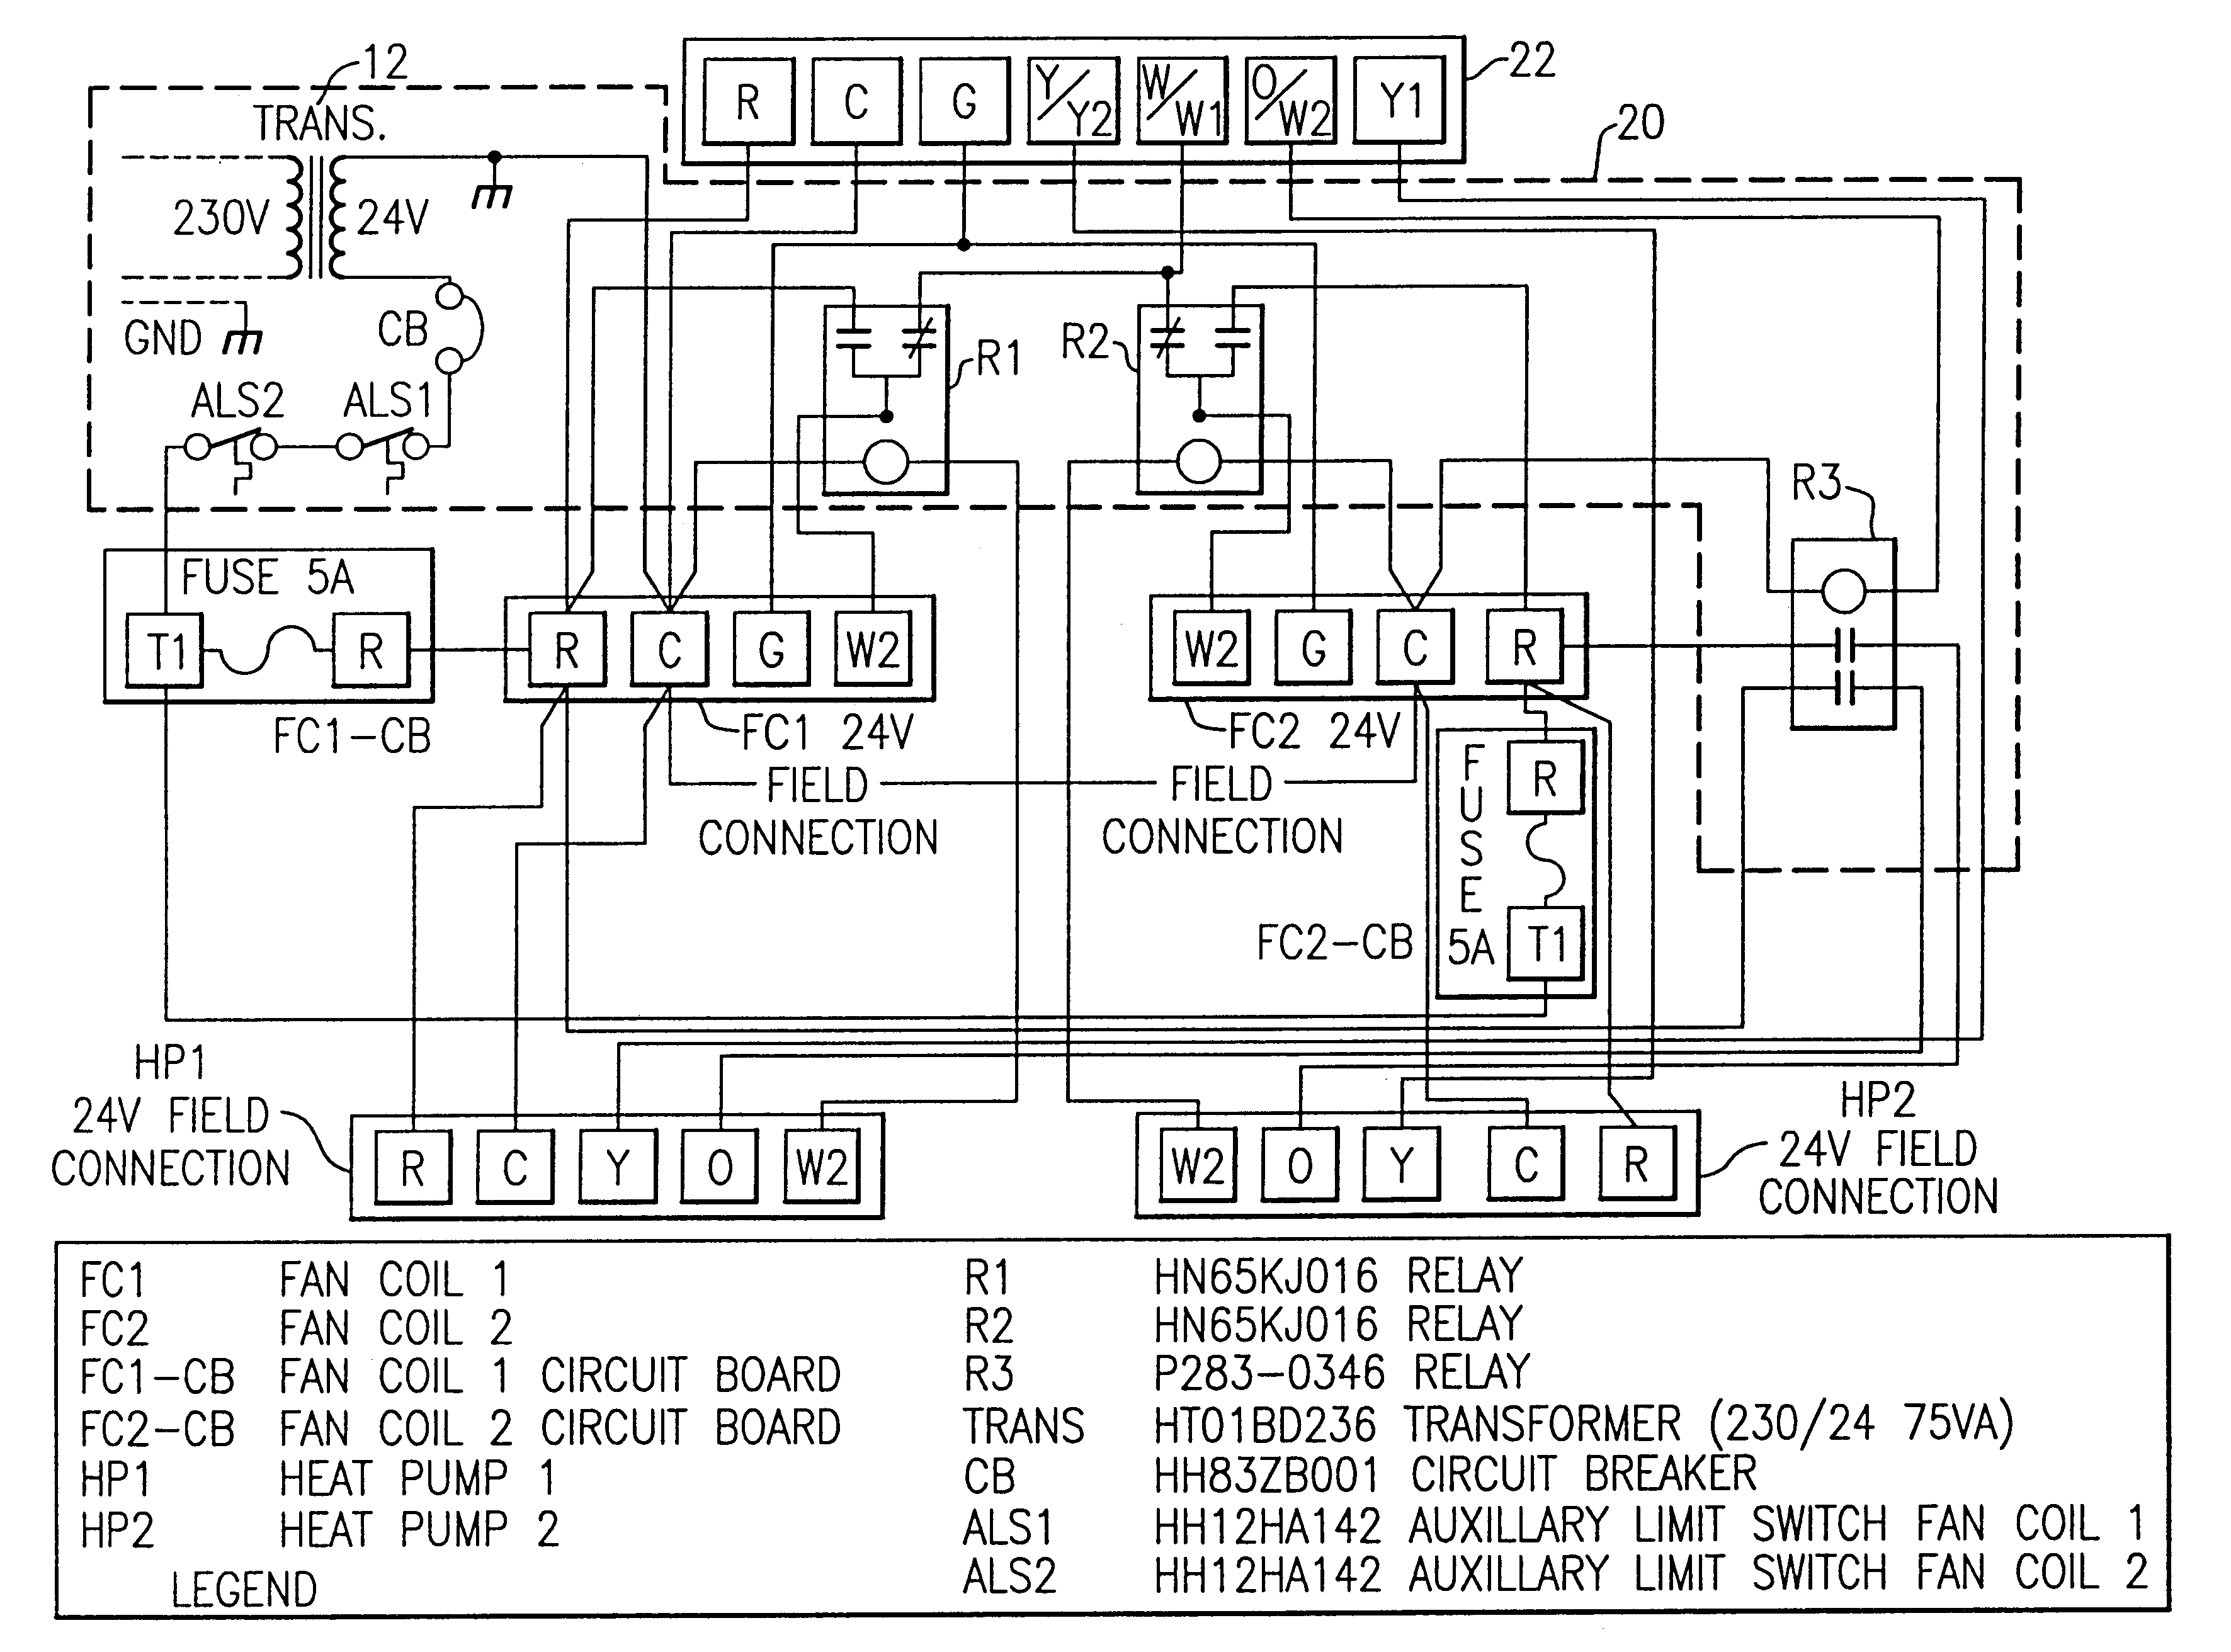 Wiring Diagram For A Ruud Heat Pump in addition How Can I Add A C Wire To My Thermostat also US6606871 likewise Payne Gas Heater Wiring Diagram together with White Rodgers Wiring Diagram Advanced. on wiring diagram for honeywell thermostat with heat pump